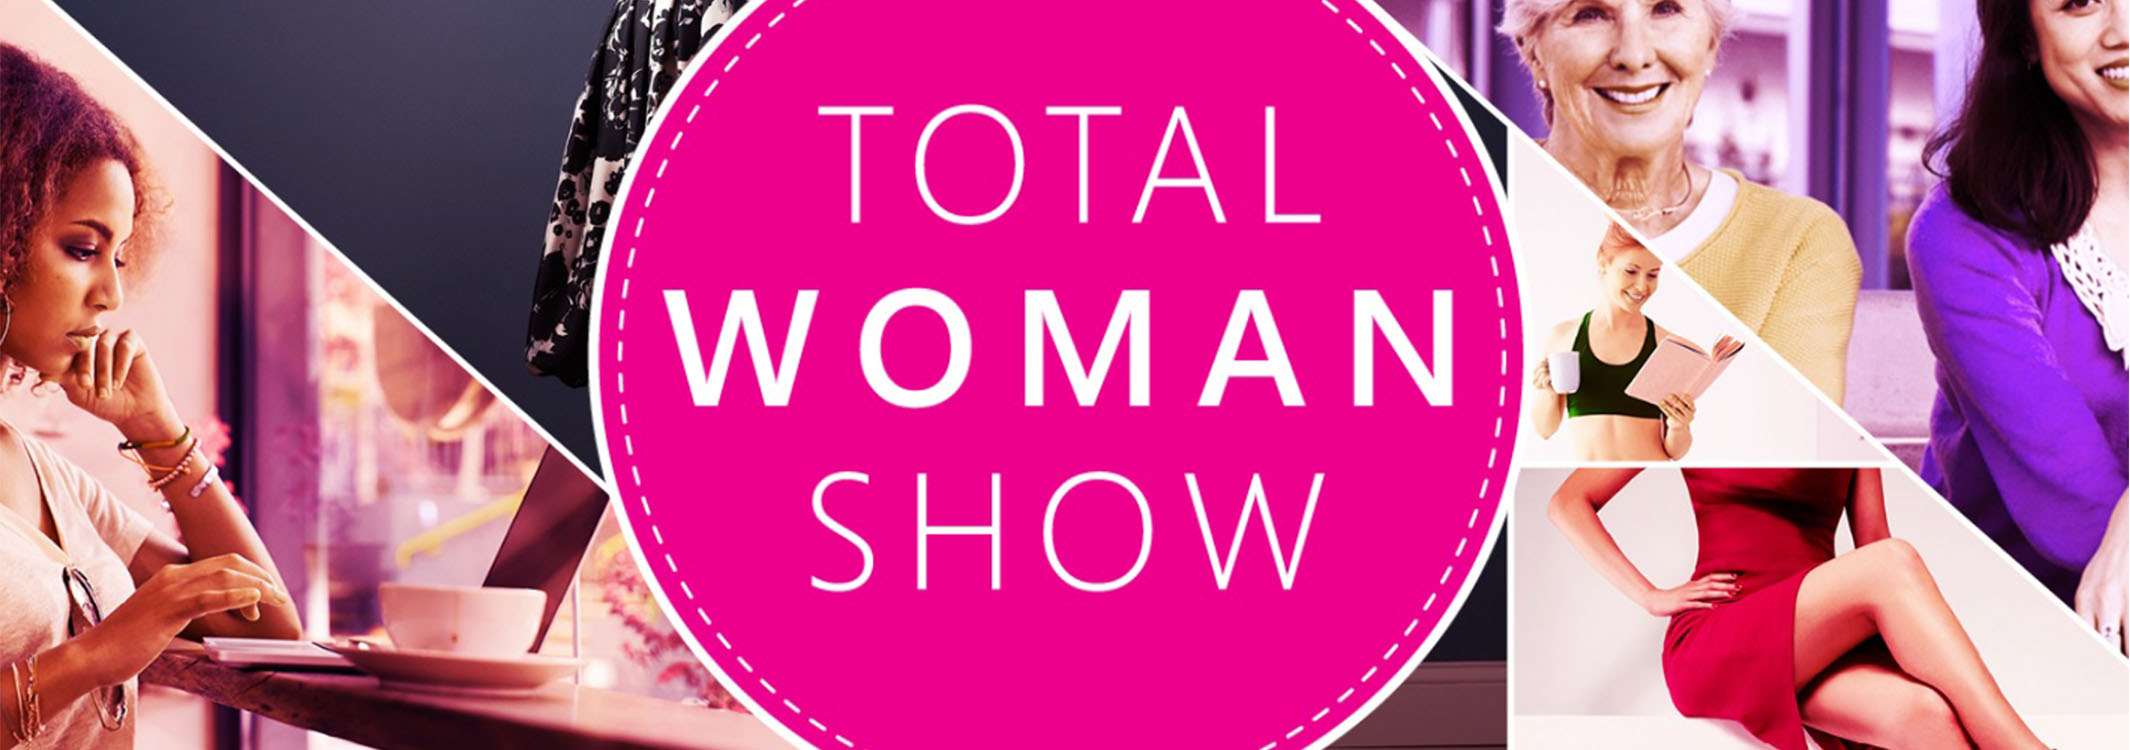 Total Woman Show